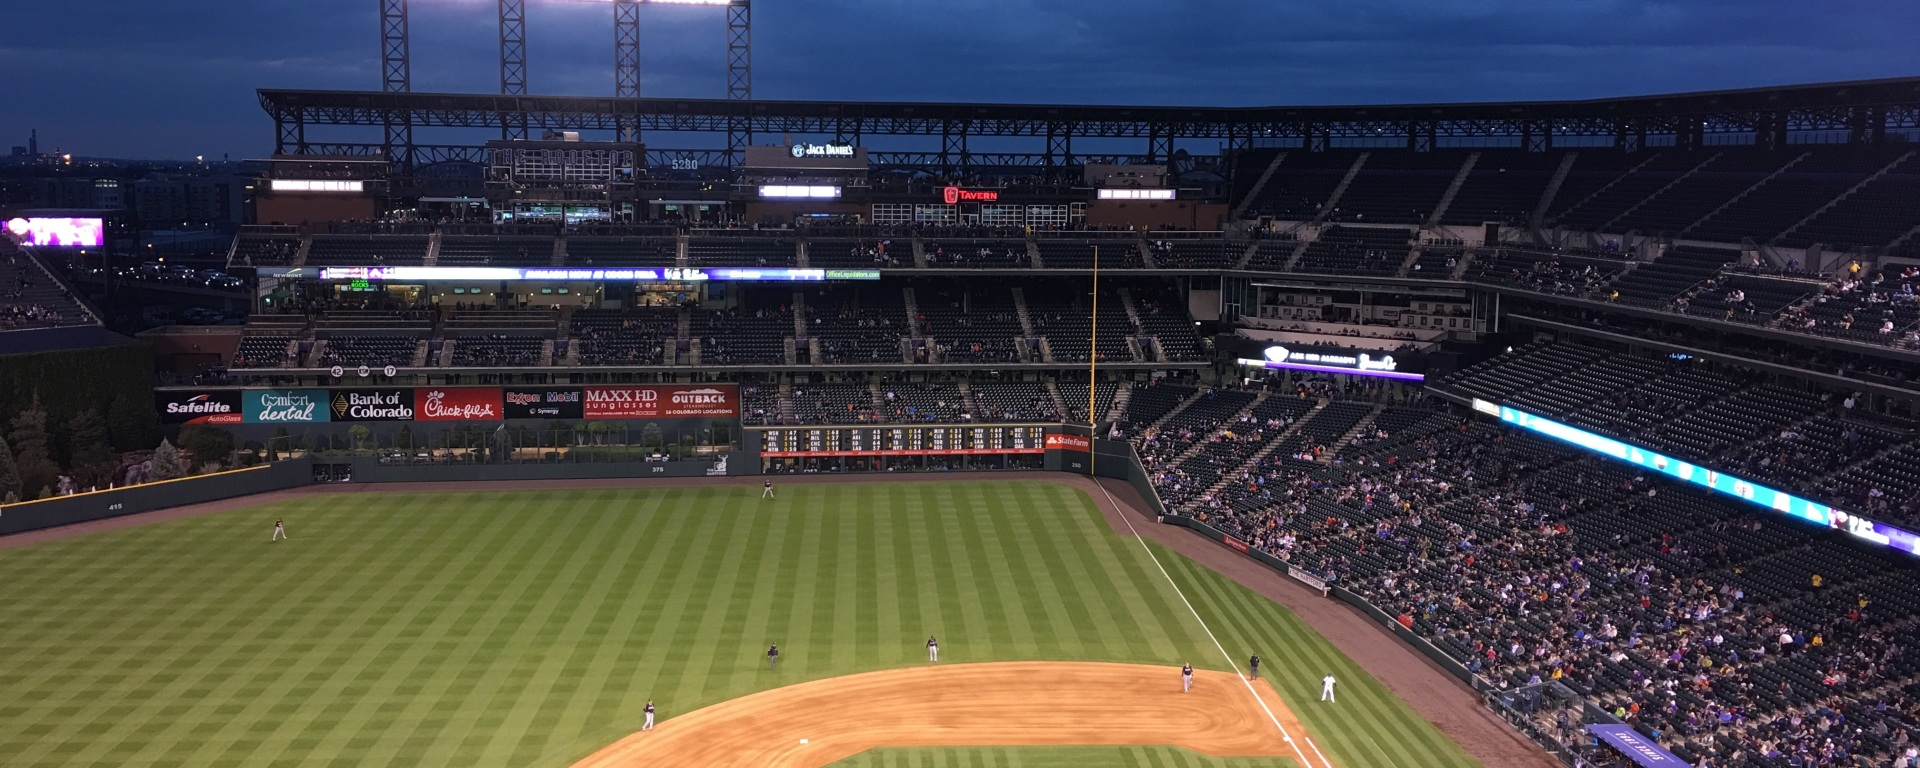 Watching the Rockies at Coors Field.